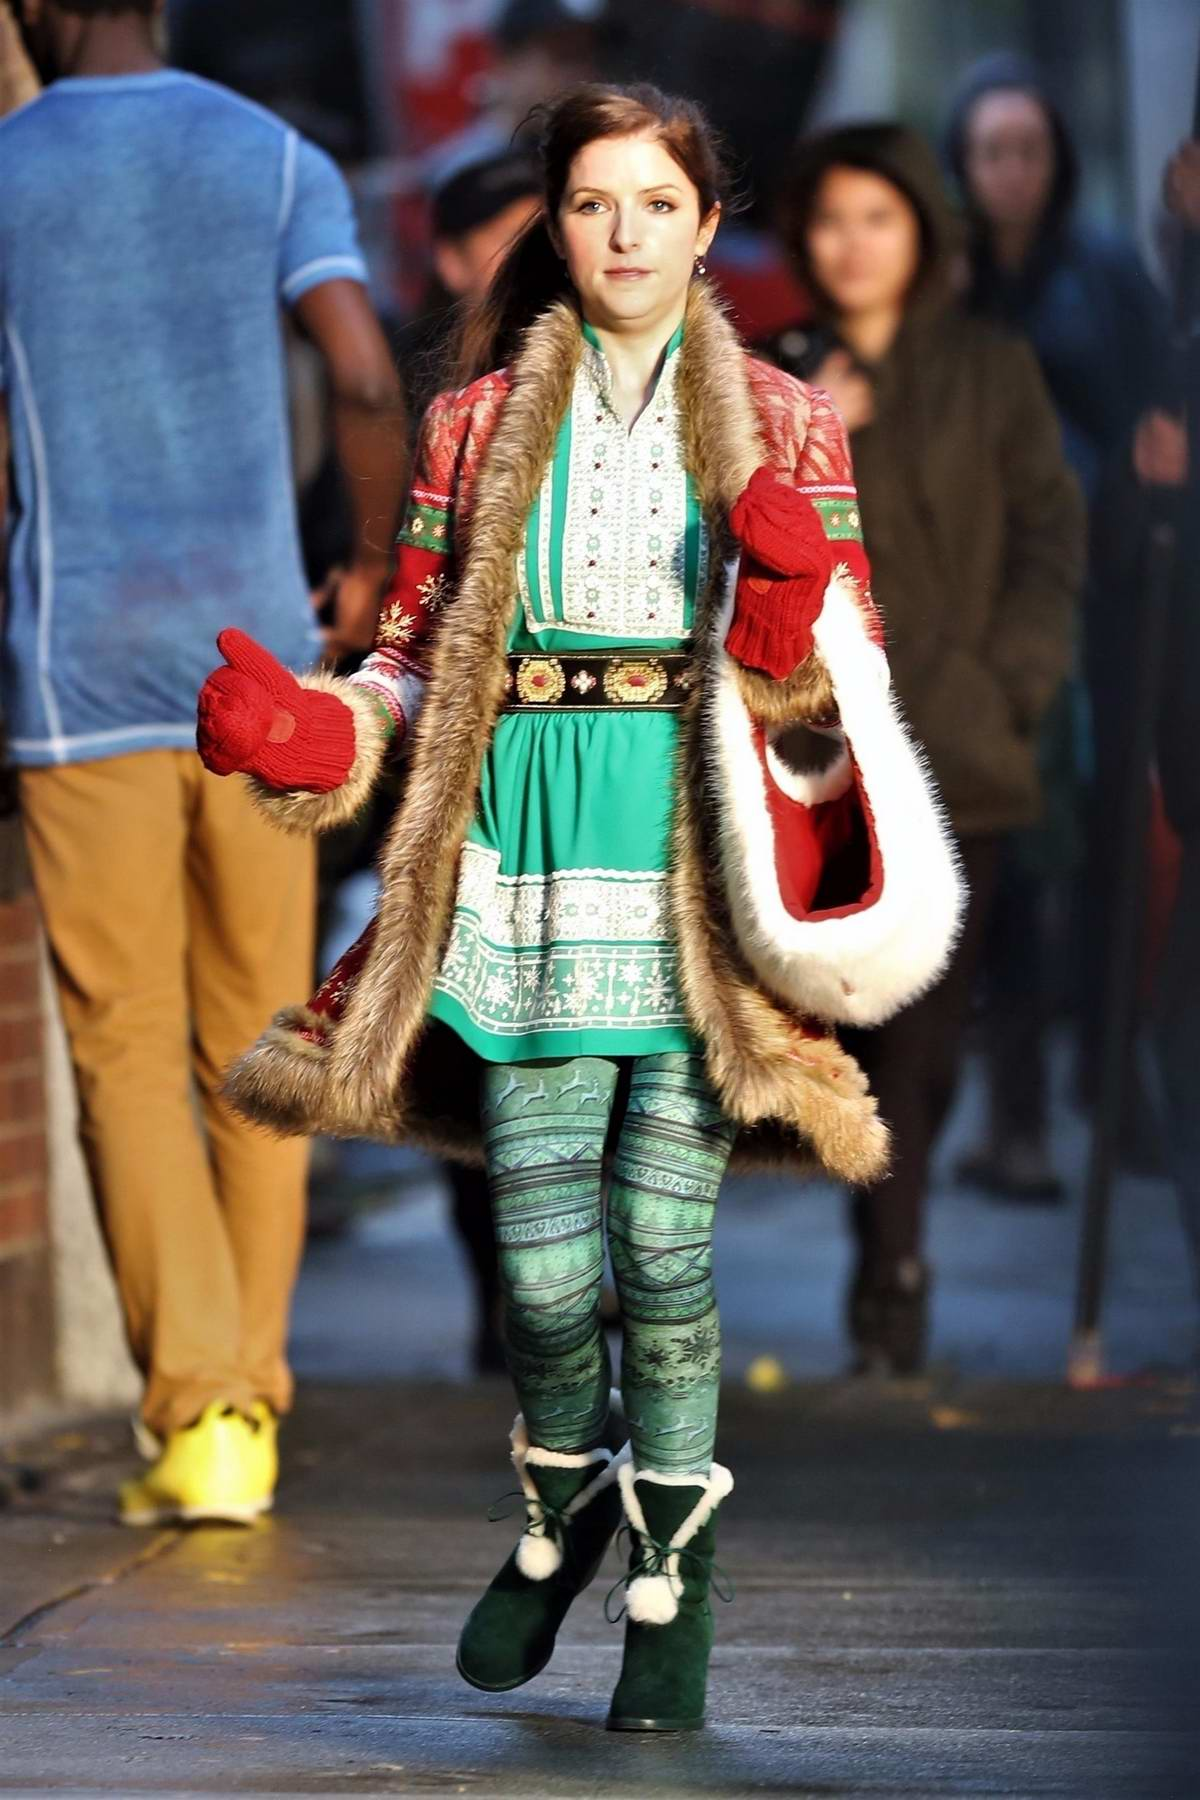 Anna Kendrick shoots a scene for Christmas feature in Vancouver, Canada